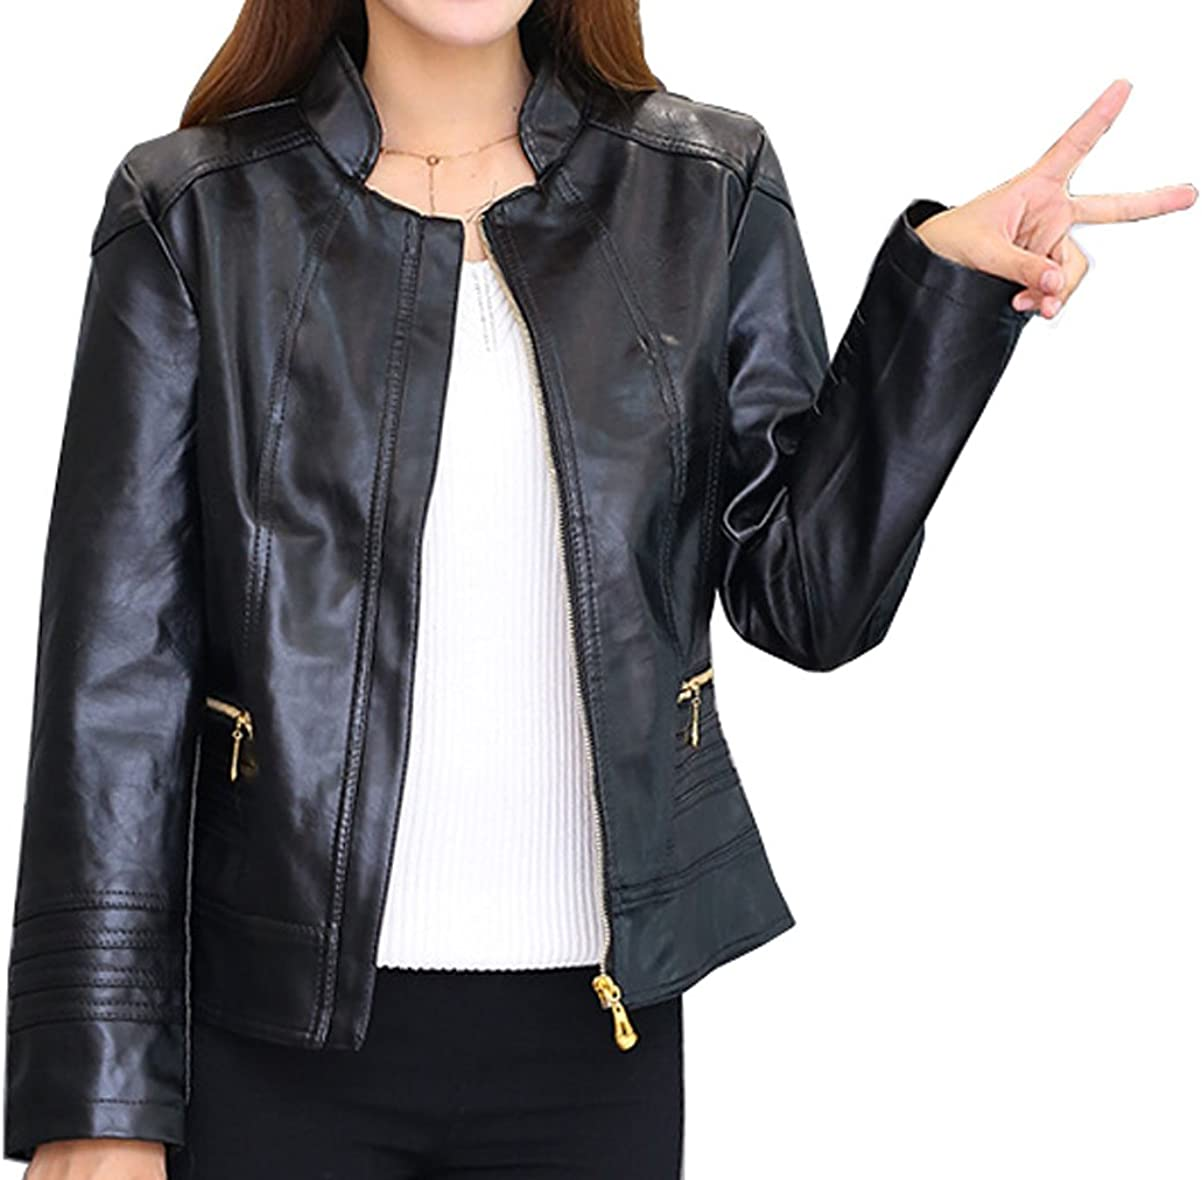 Qinni-shop Women Black,Red and Blue Faux Leather Stand Collar Short Fashion Jacket